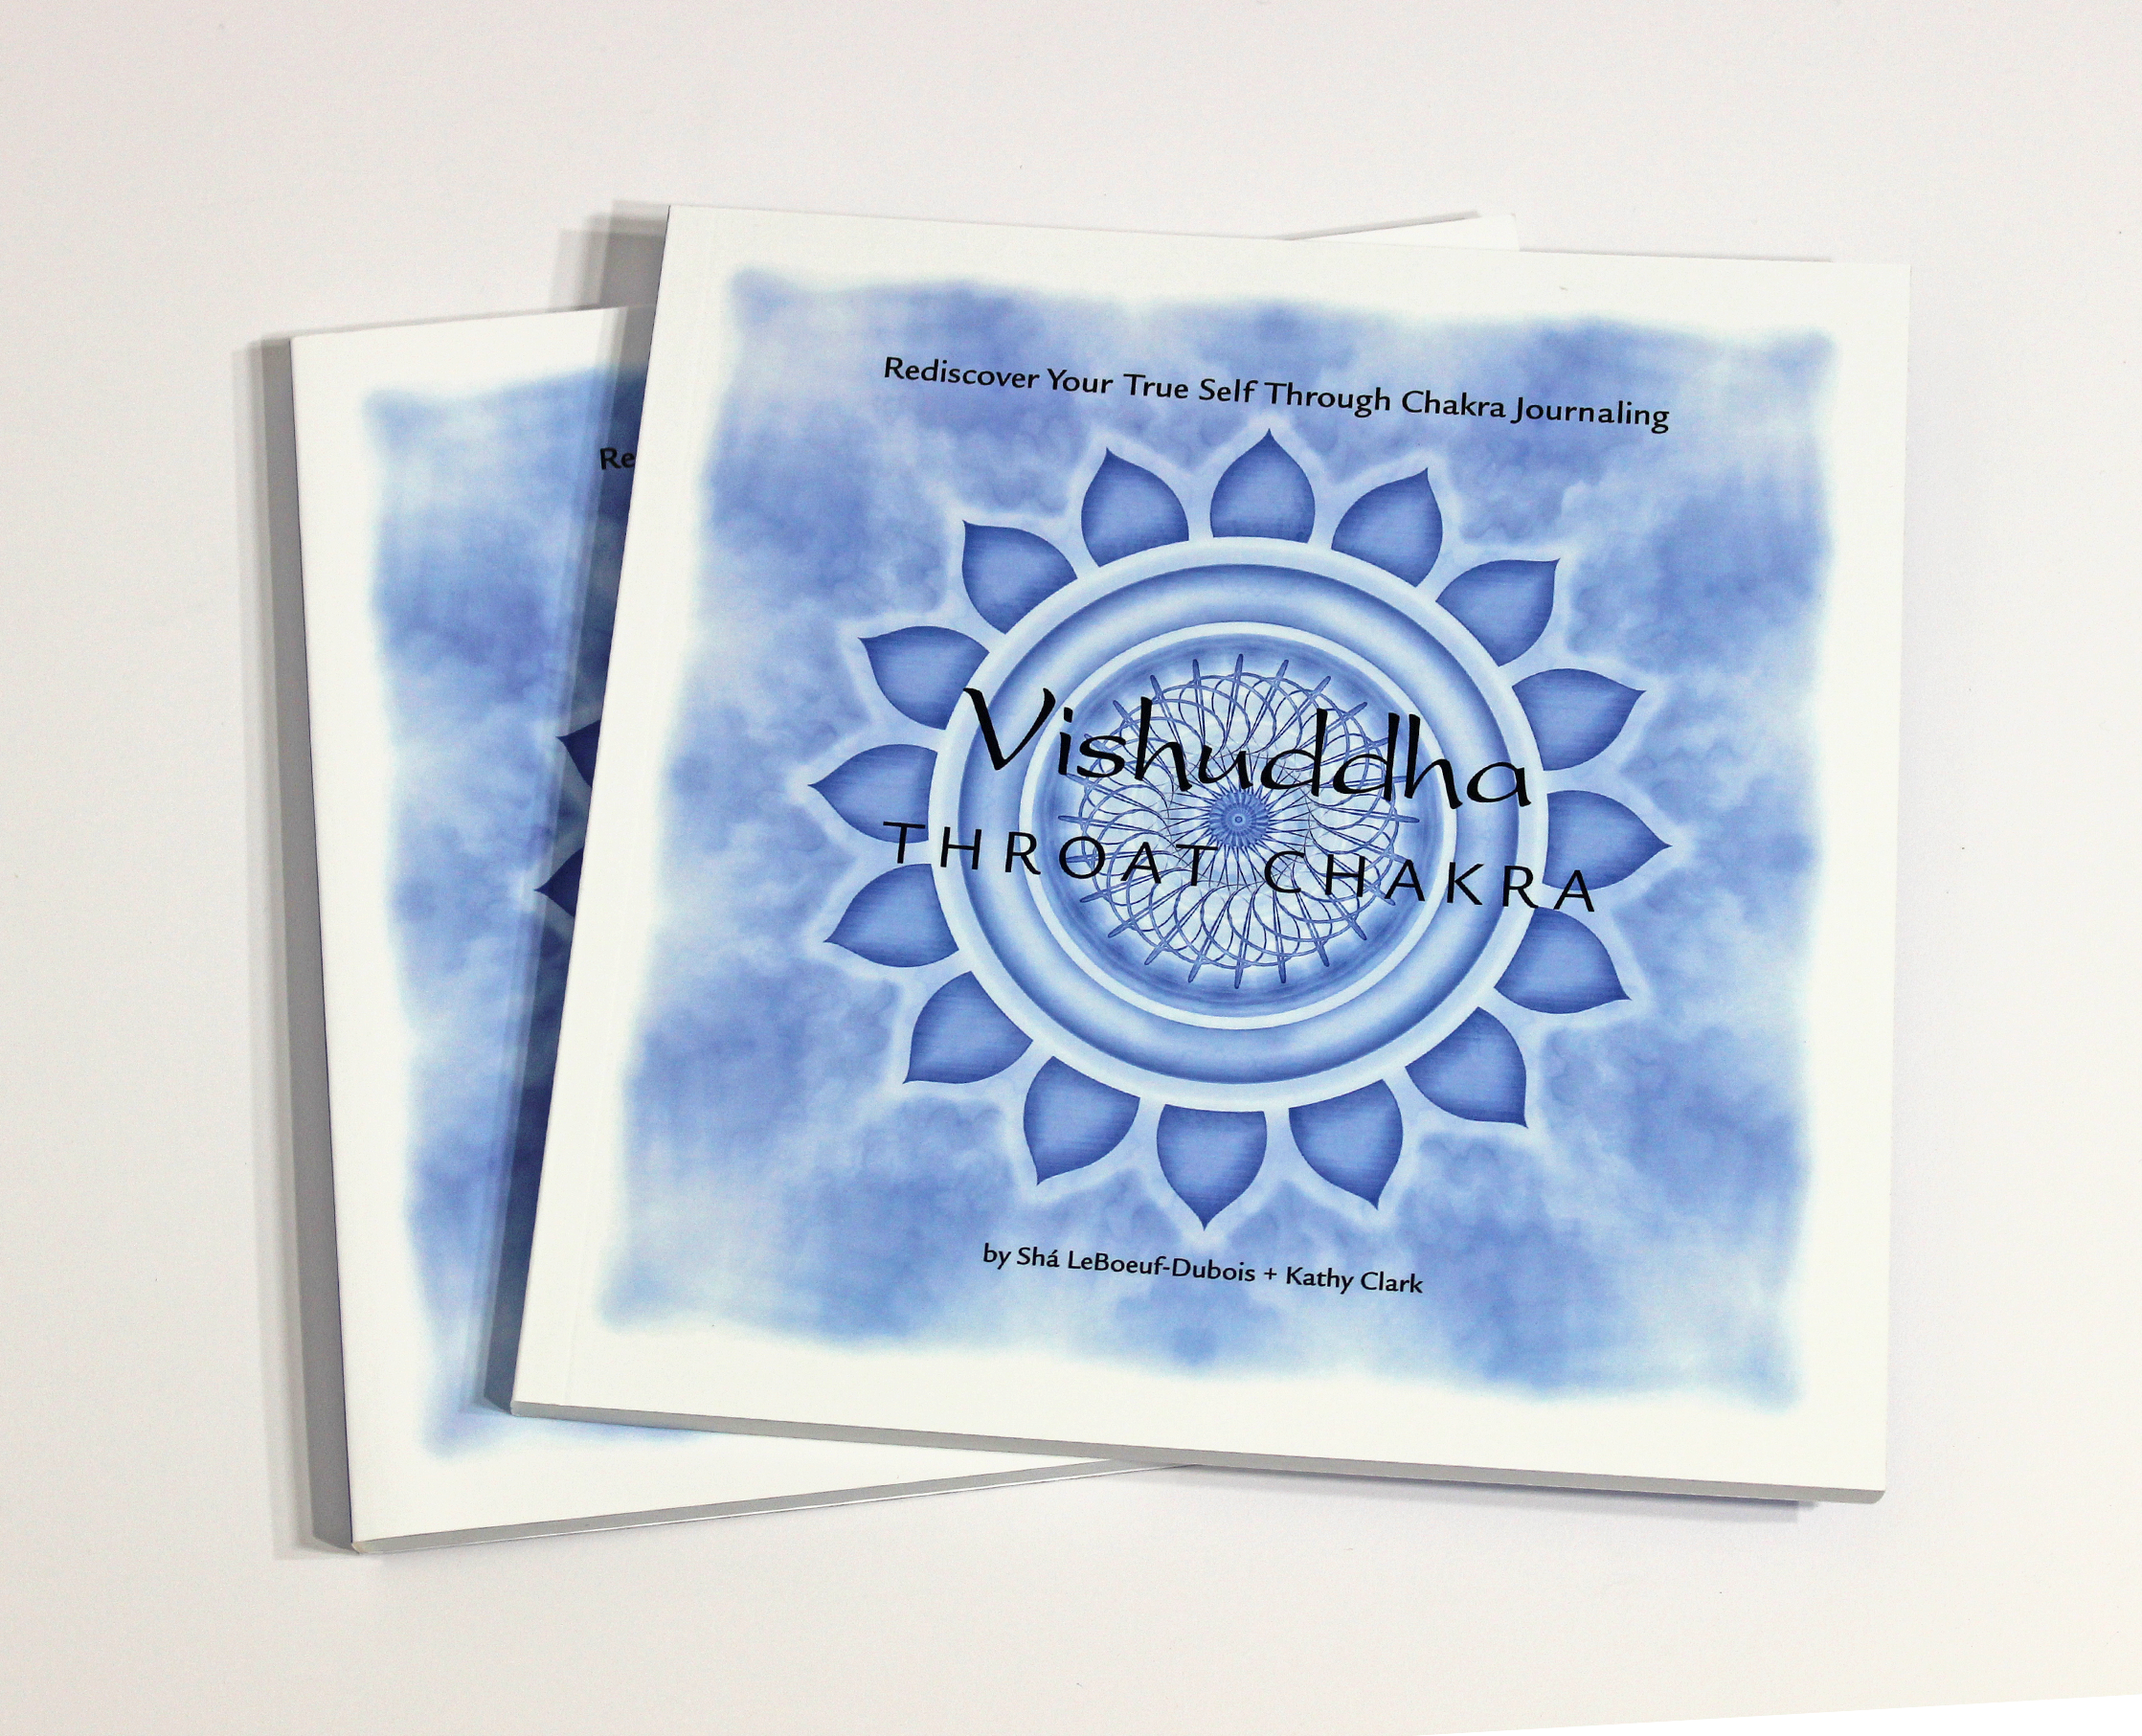 VISHUDDHA: THROAT CHAKRA JOURNAL - $24  Exploring the mysterious energy center of Vishuddha, learn to live a authentic life, and rediscover your true self through chakra journaling.